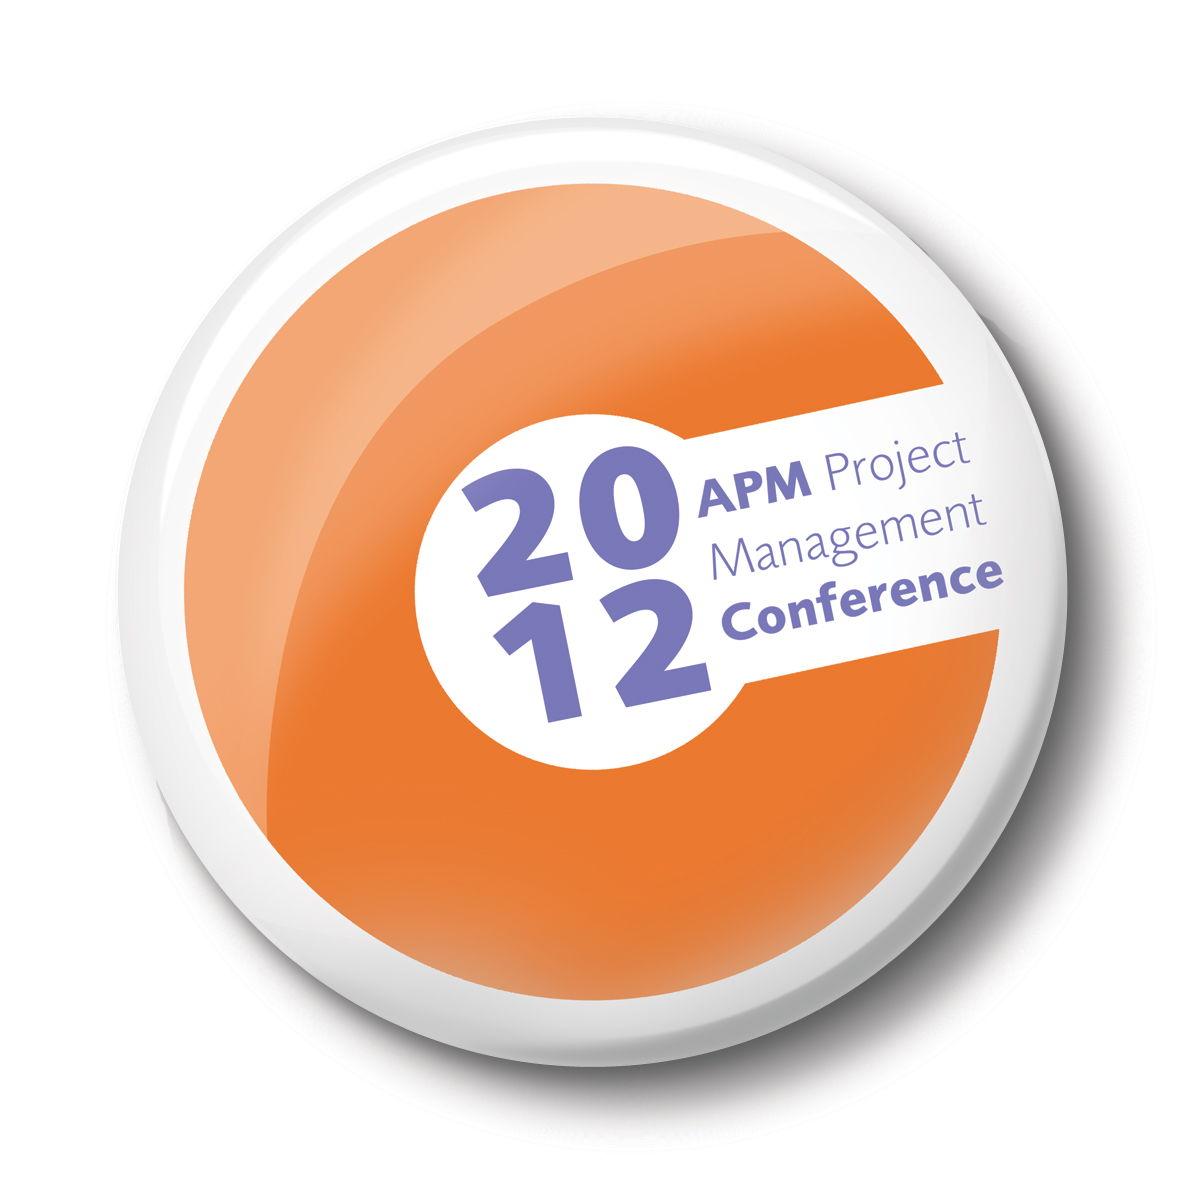 APM Conference 2012